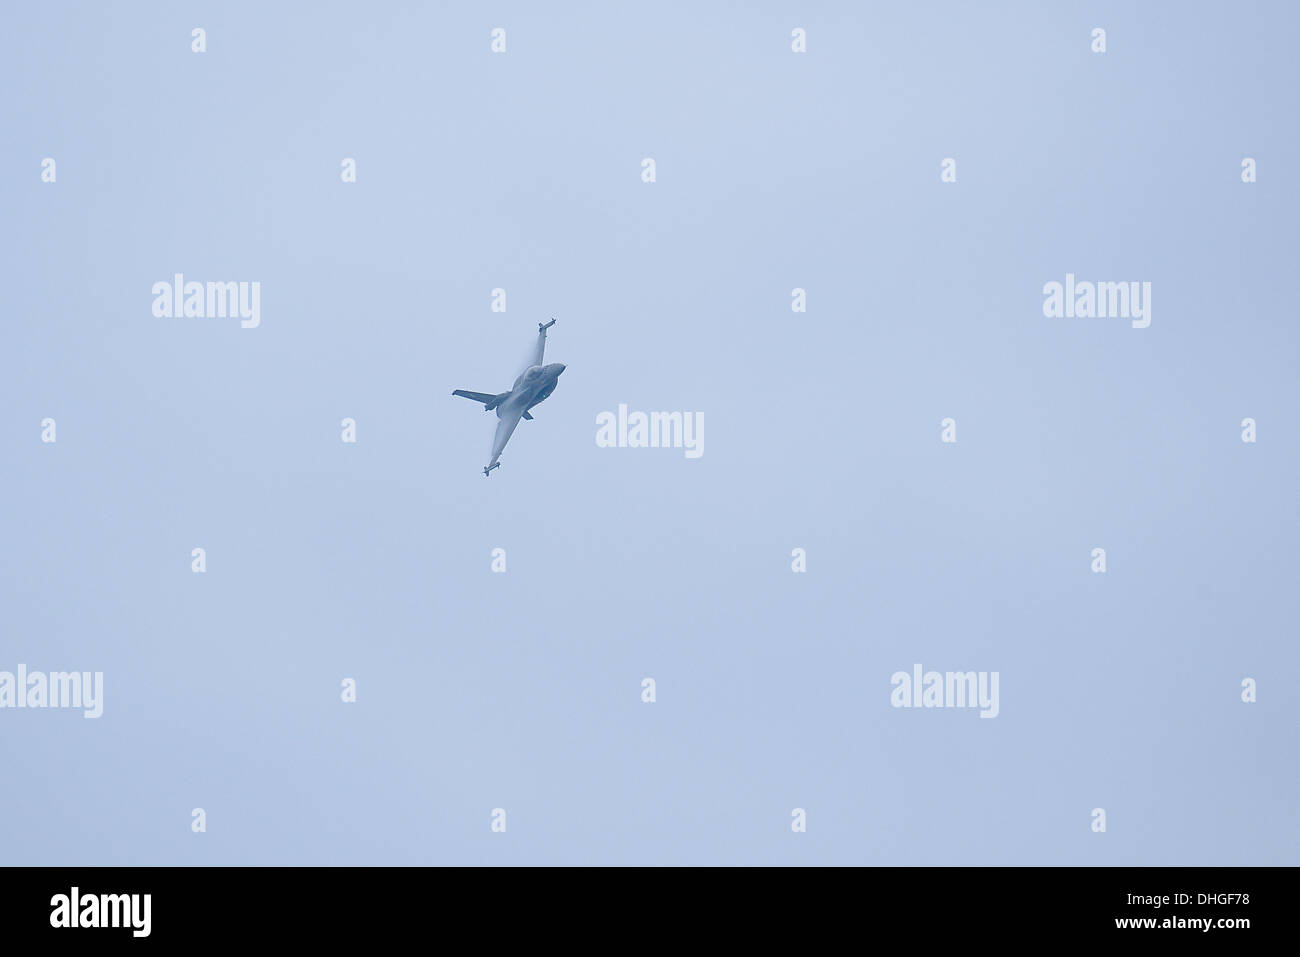 The F-16C during a high G maneuver over Thessaloniki - Stock Image